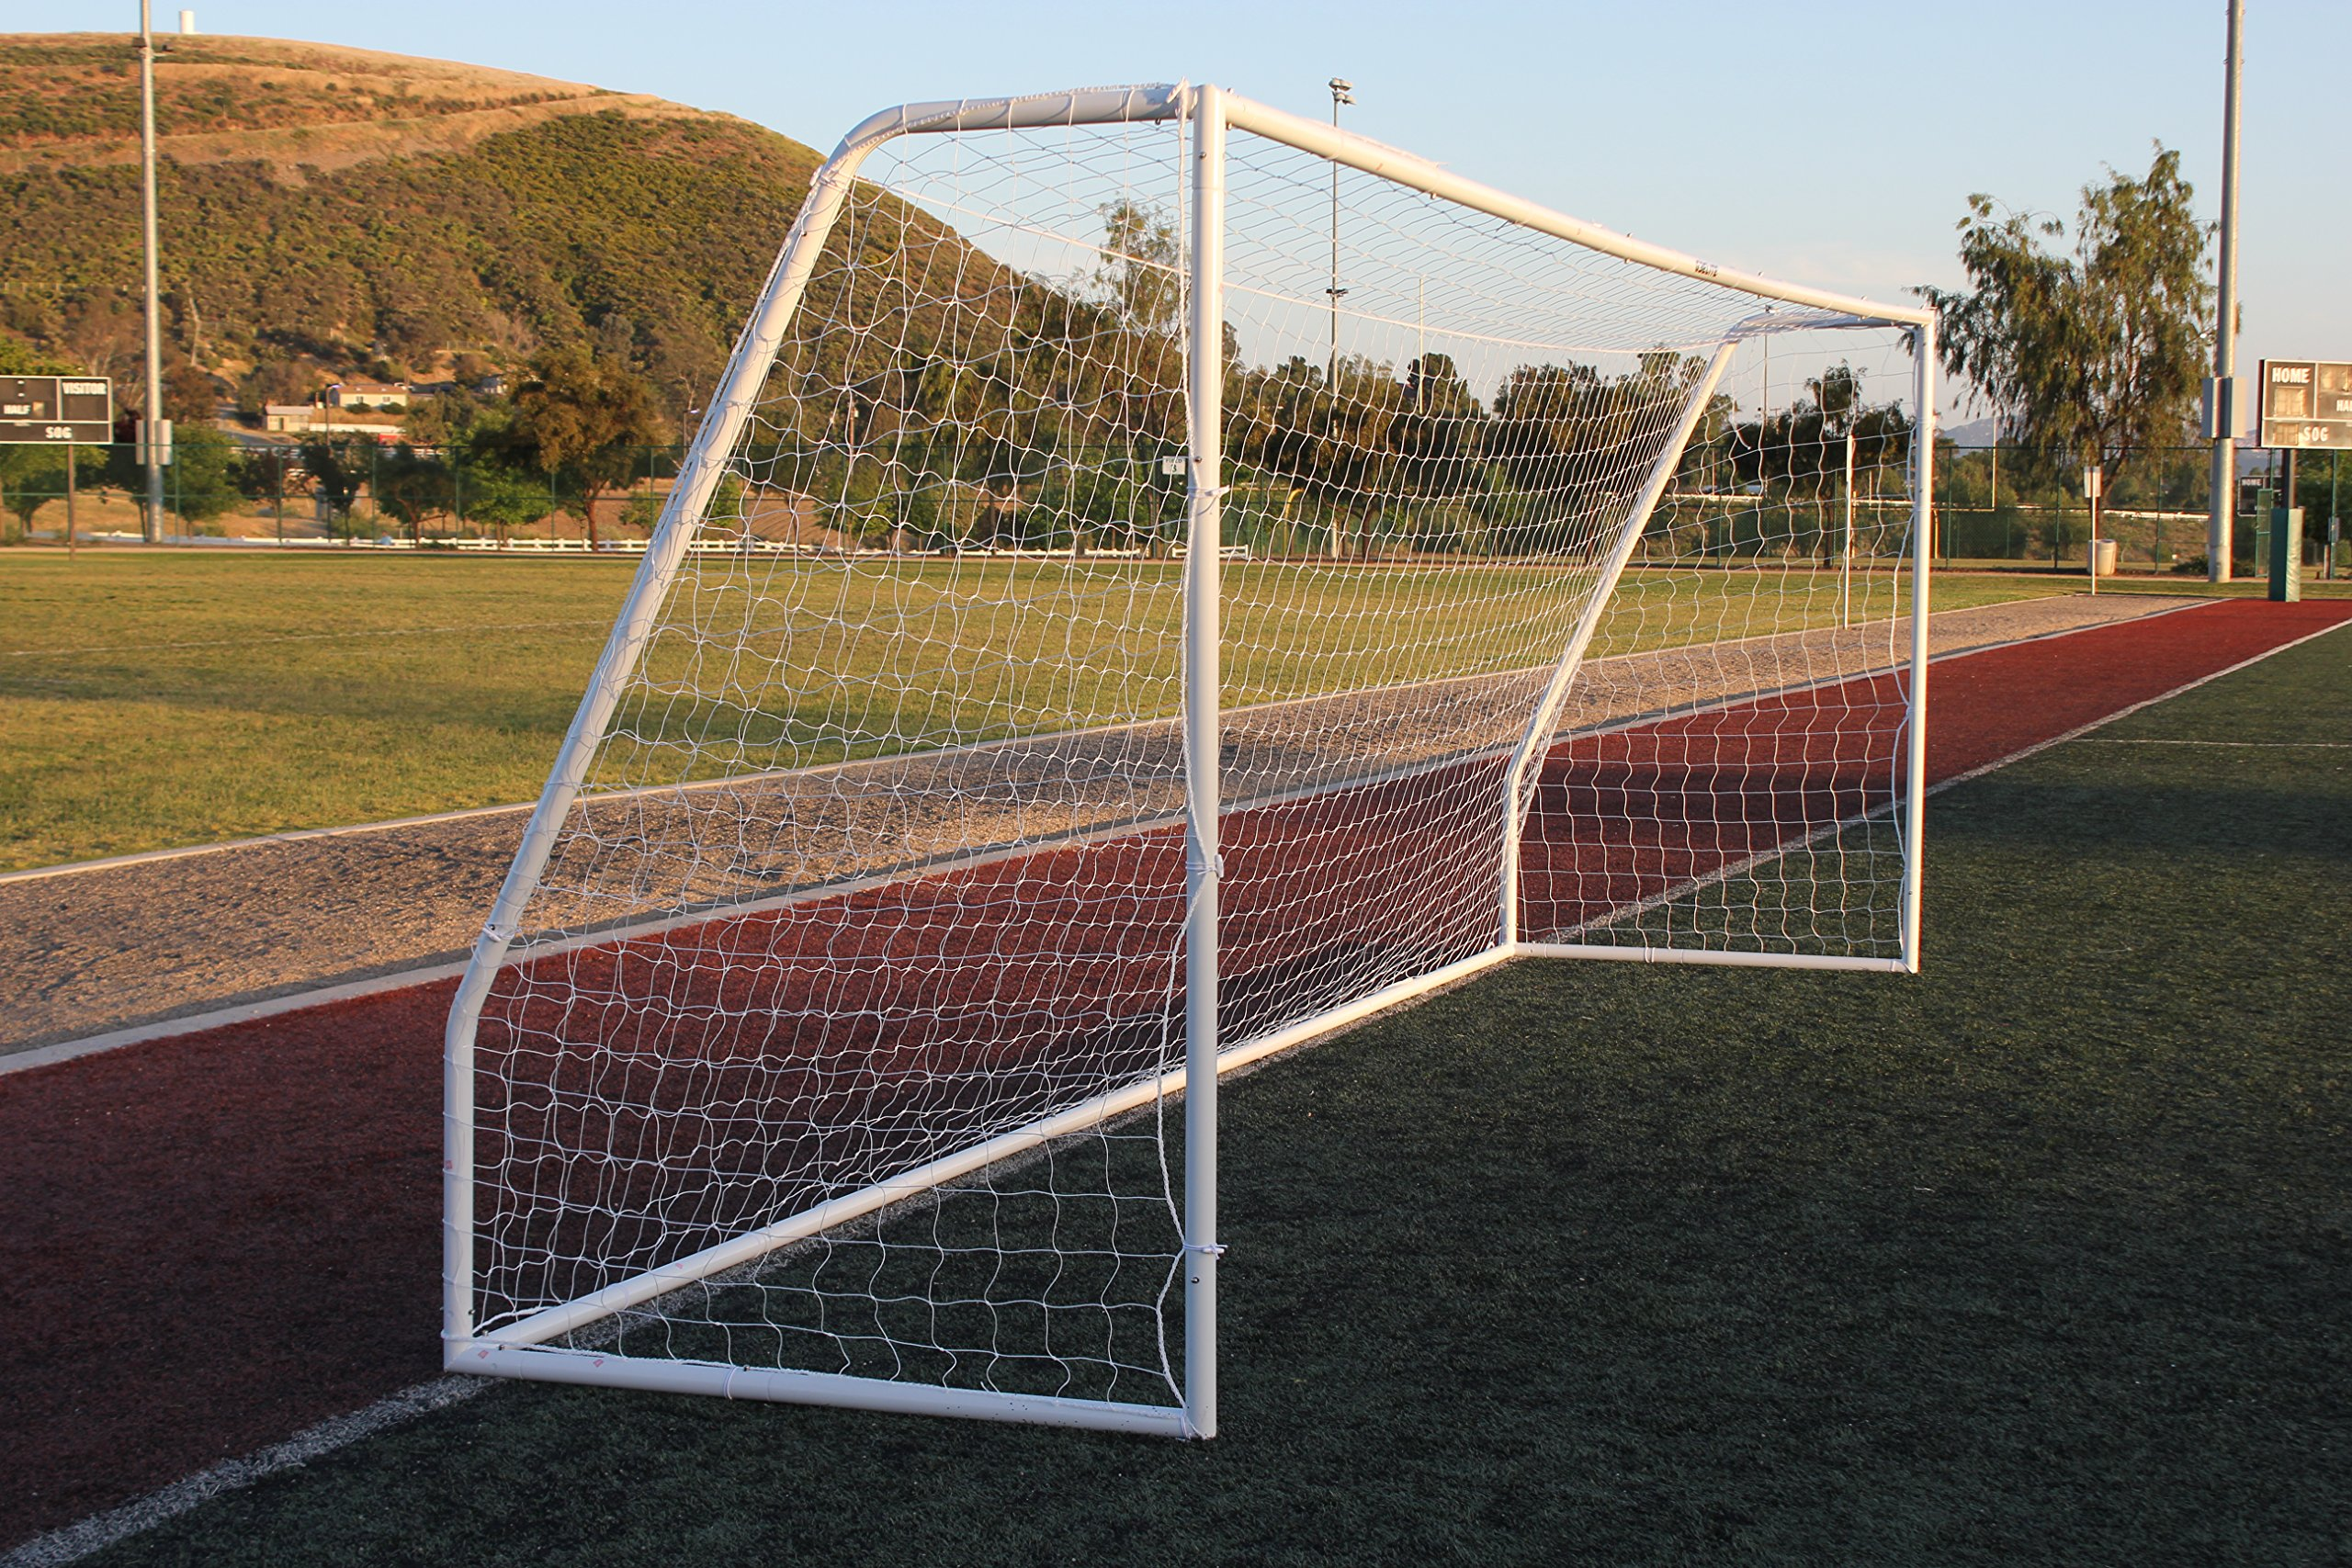 G3Elite Pro 18½ x 6½ Regulation Junior Youth Soccer Goal (Discounted Less Than Perfect Item), (1) Net, Strongest Portable Steel Post Design w/Patented Corrosion Resistant Coating, 6.5 x 18.5, 18x6